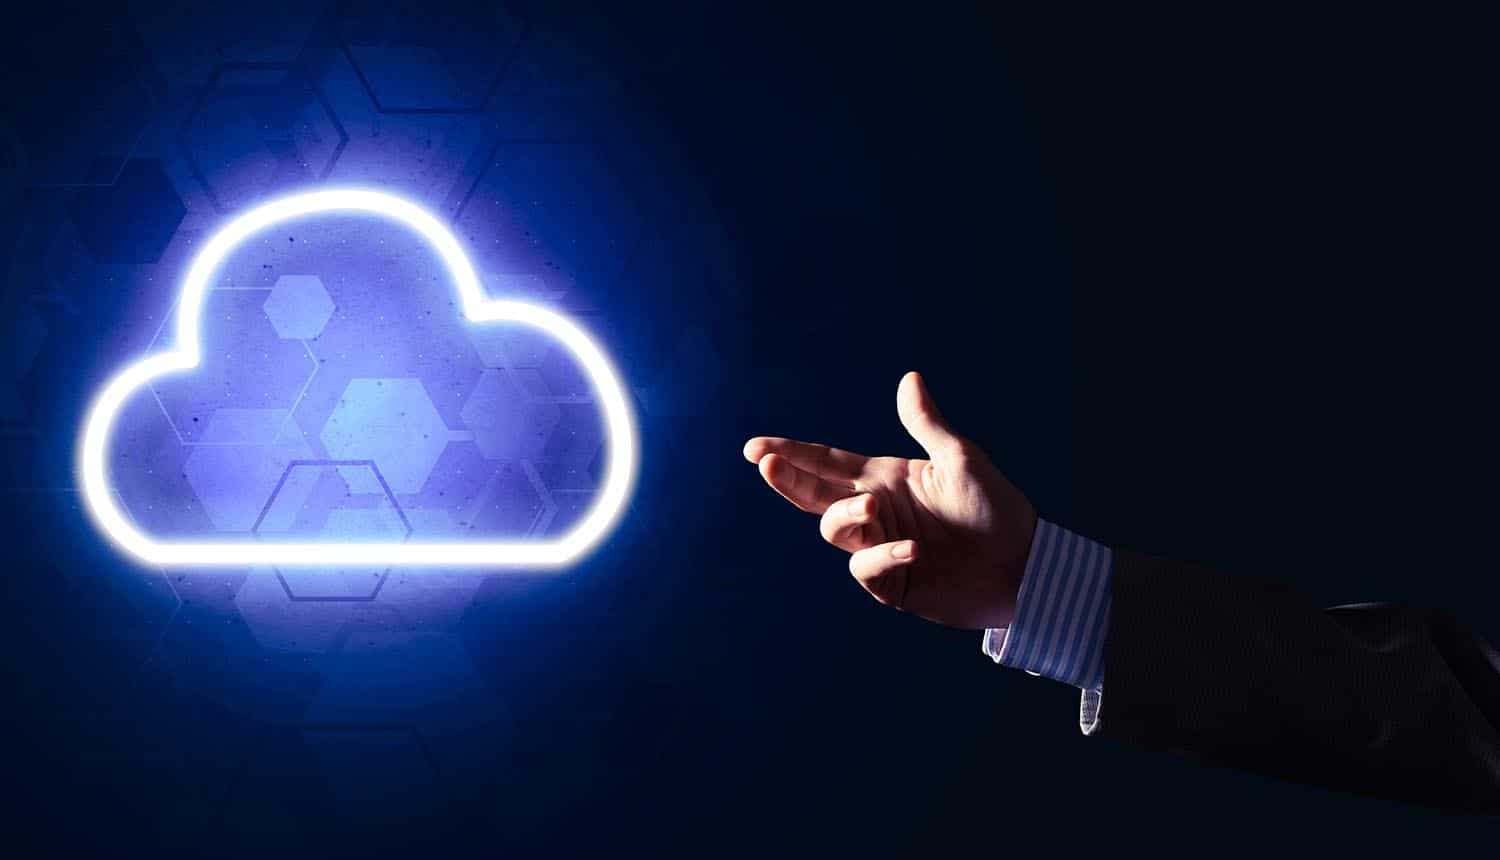 Businessman hand holding cloud-based SD-WAN concept in palm